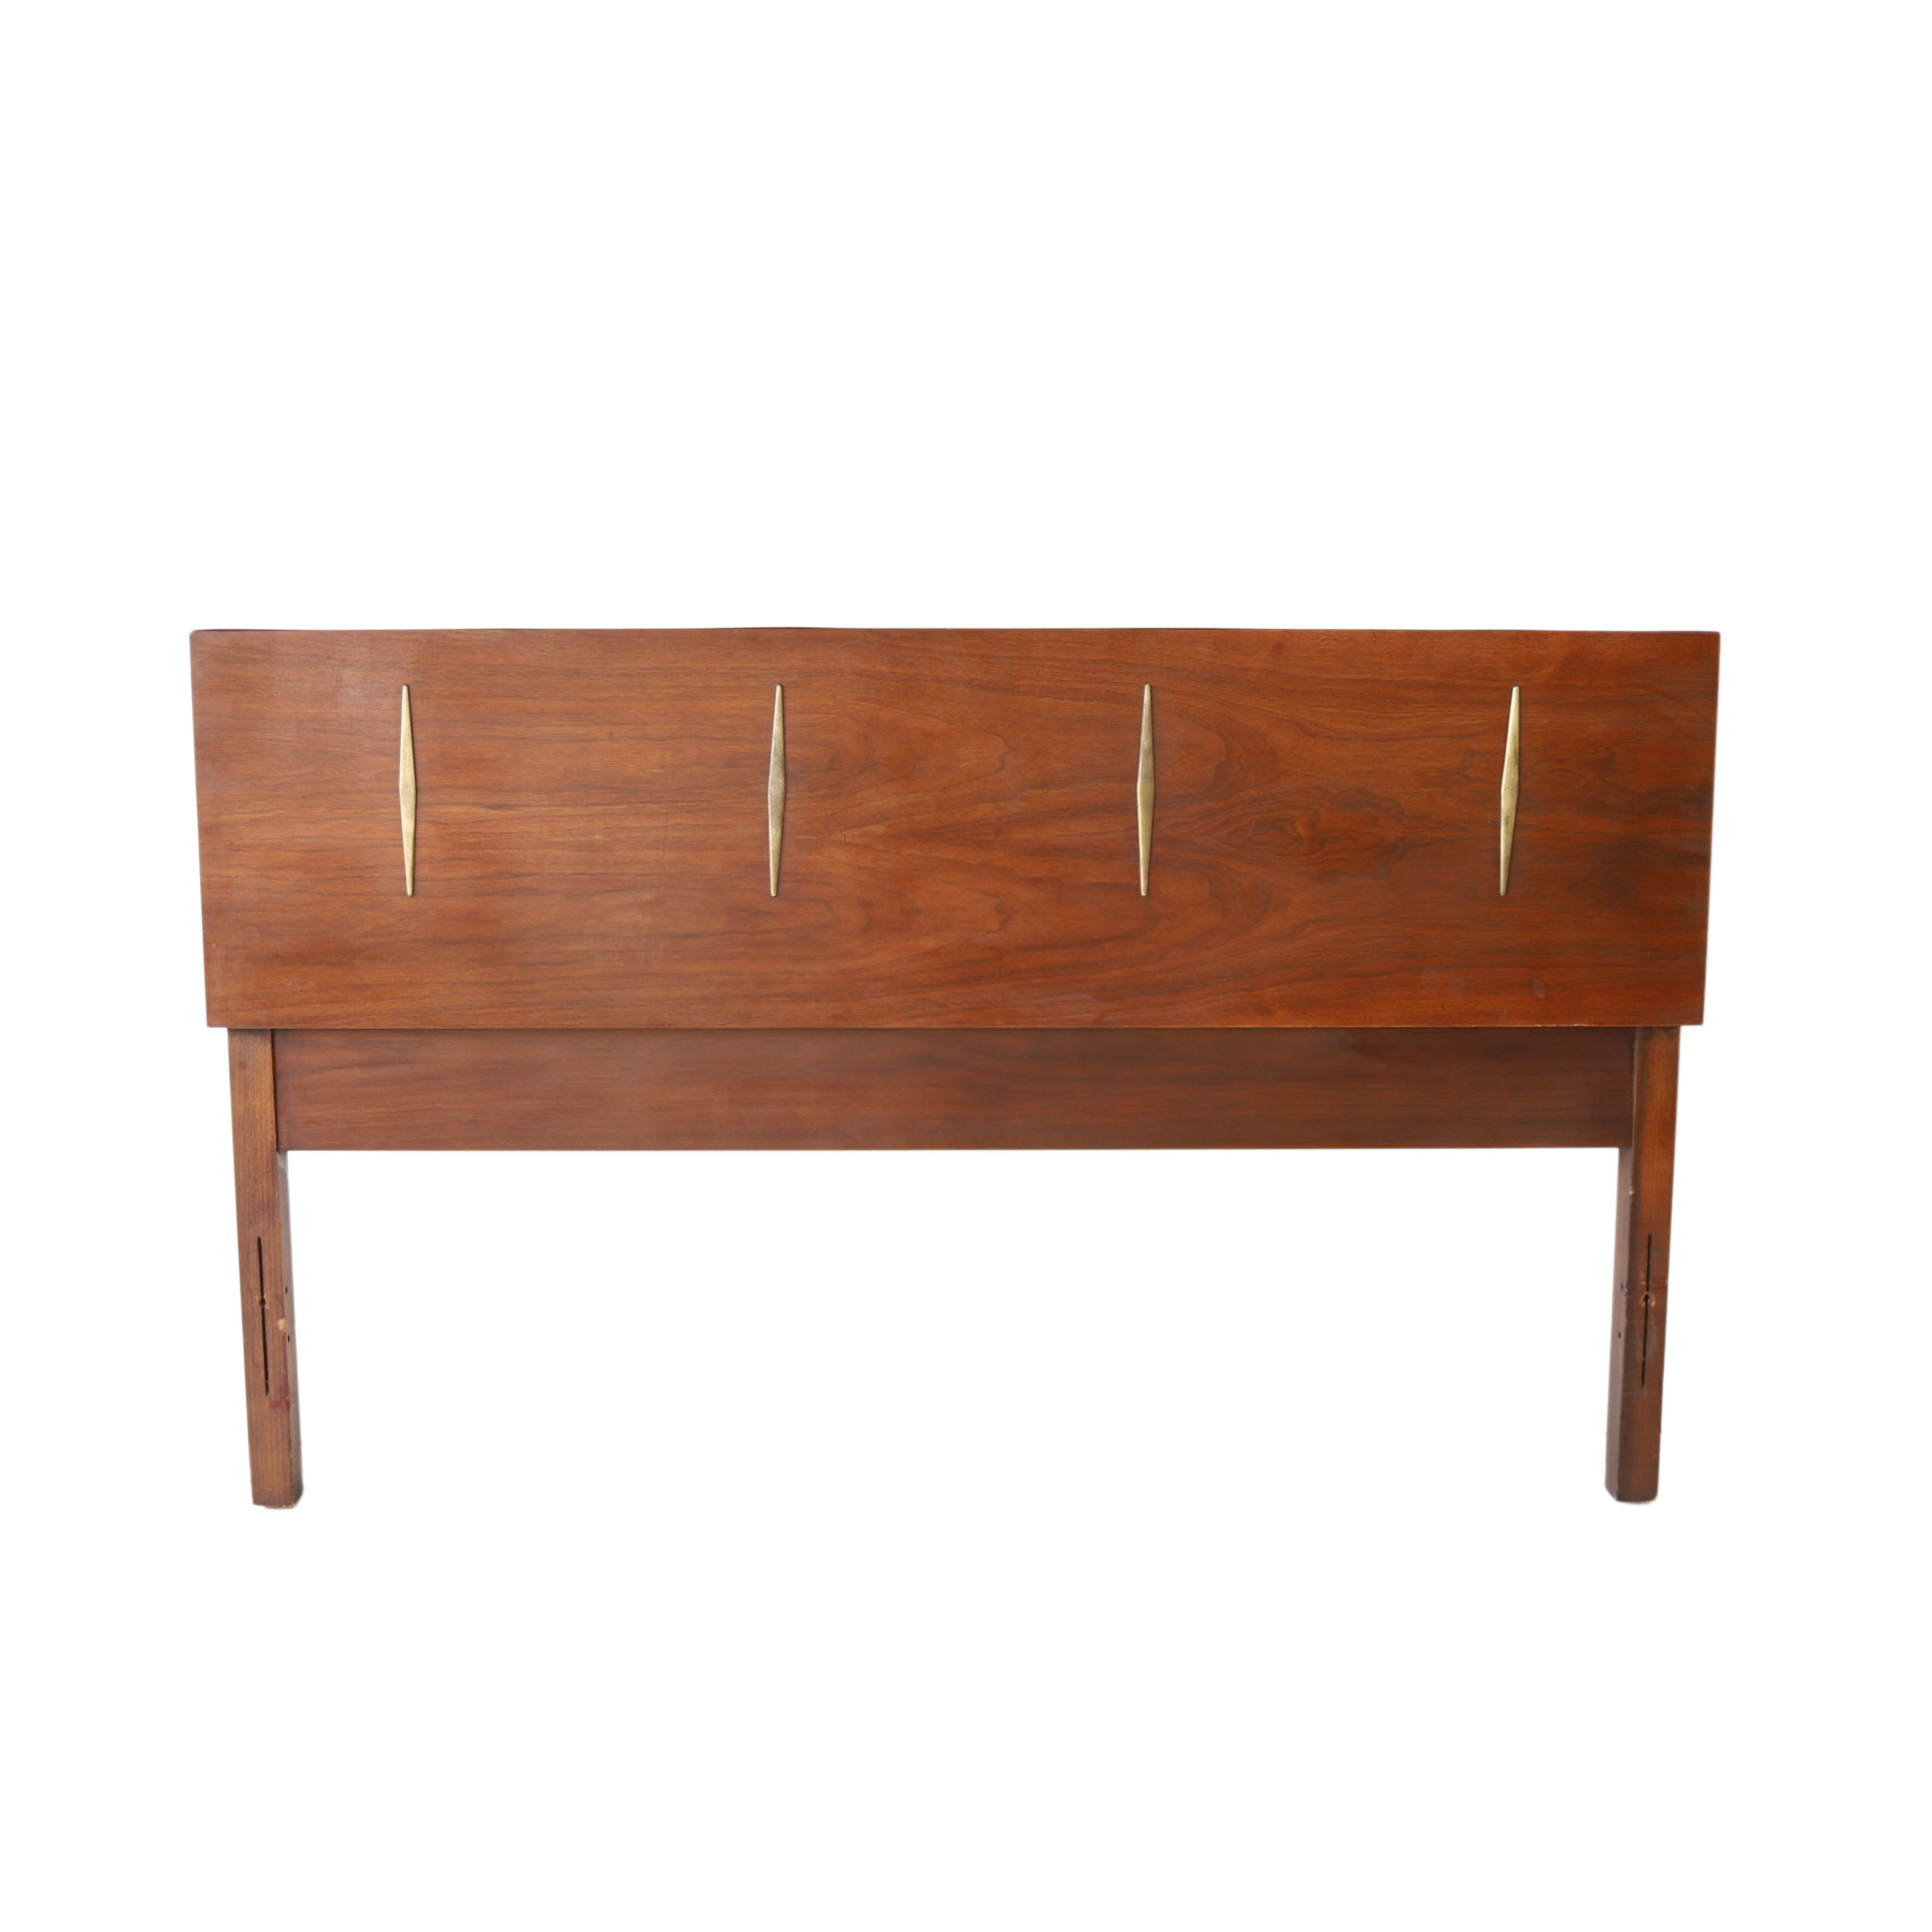 New Products Vintage Mid Century Modern Full Geometric Headboard At 1st Sight